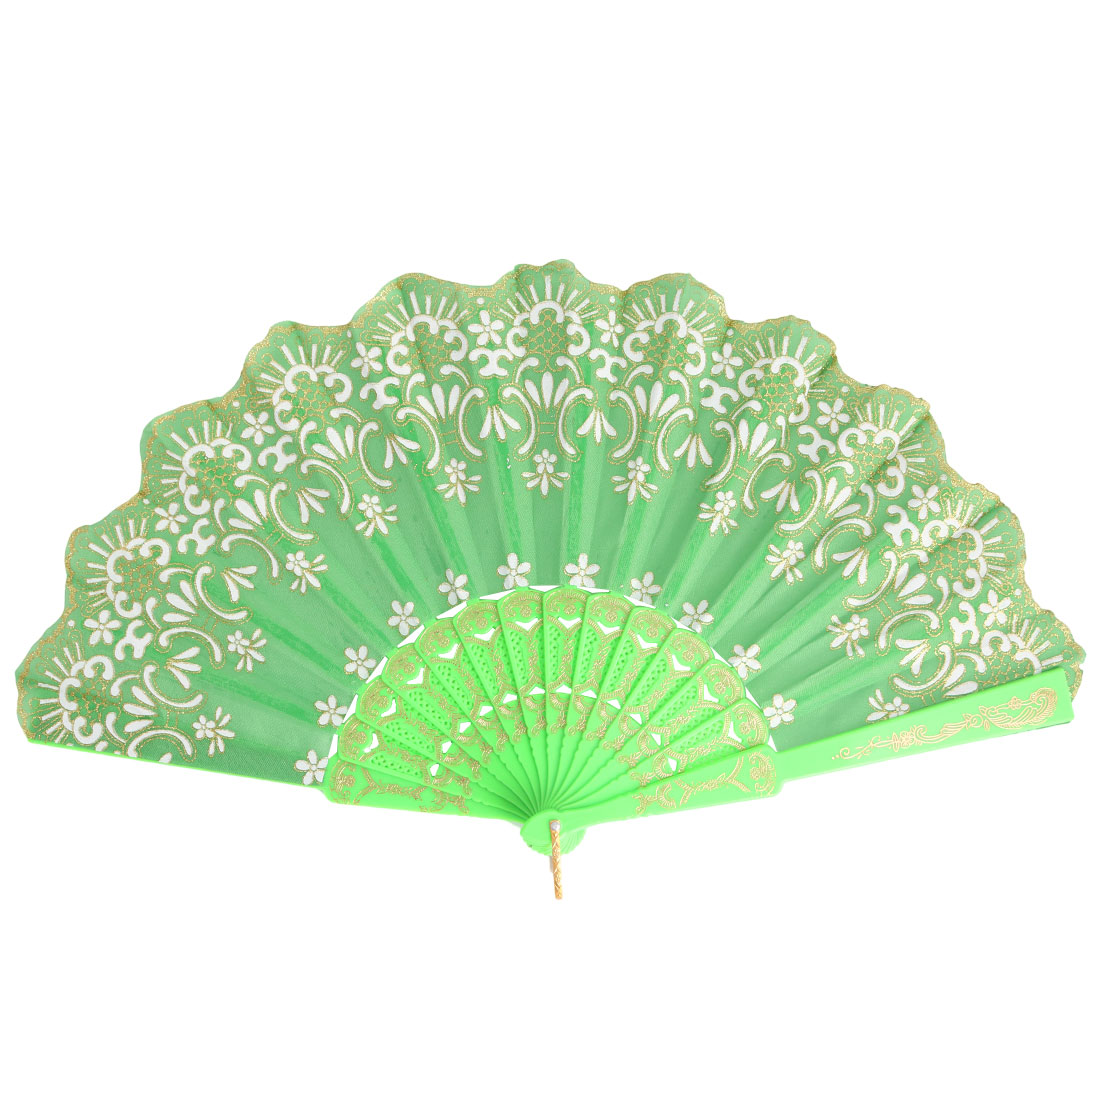 Household Hollow Out Frame Retro Style Craft Decor Shining Folding Hand Fan